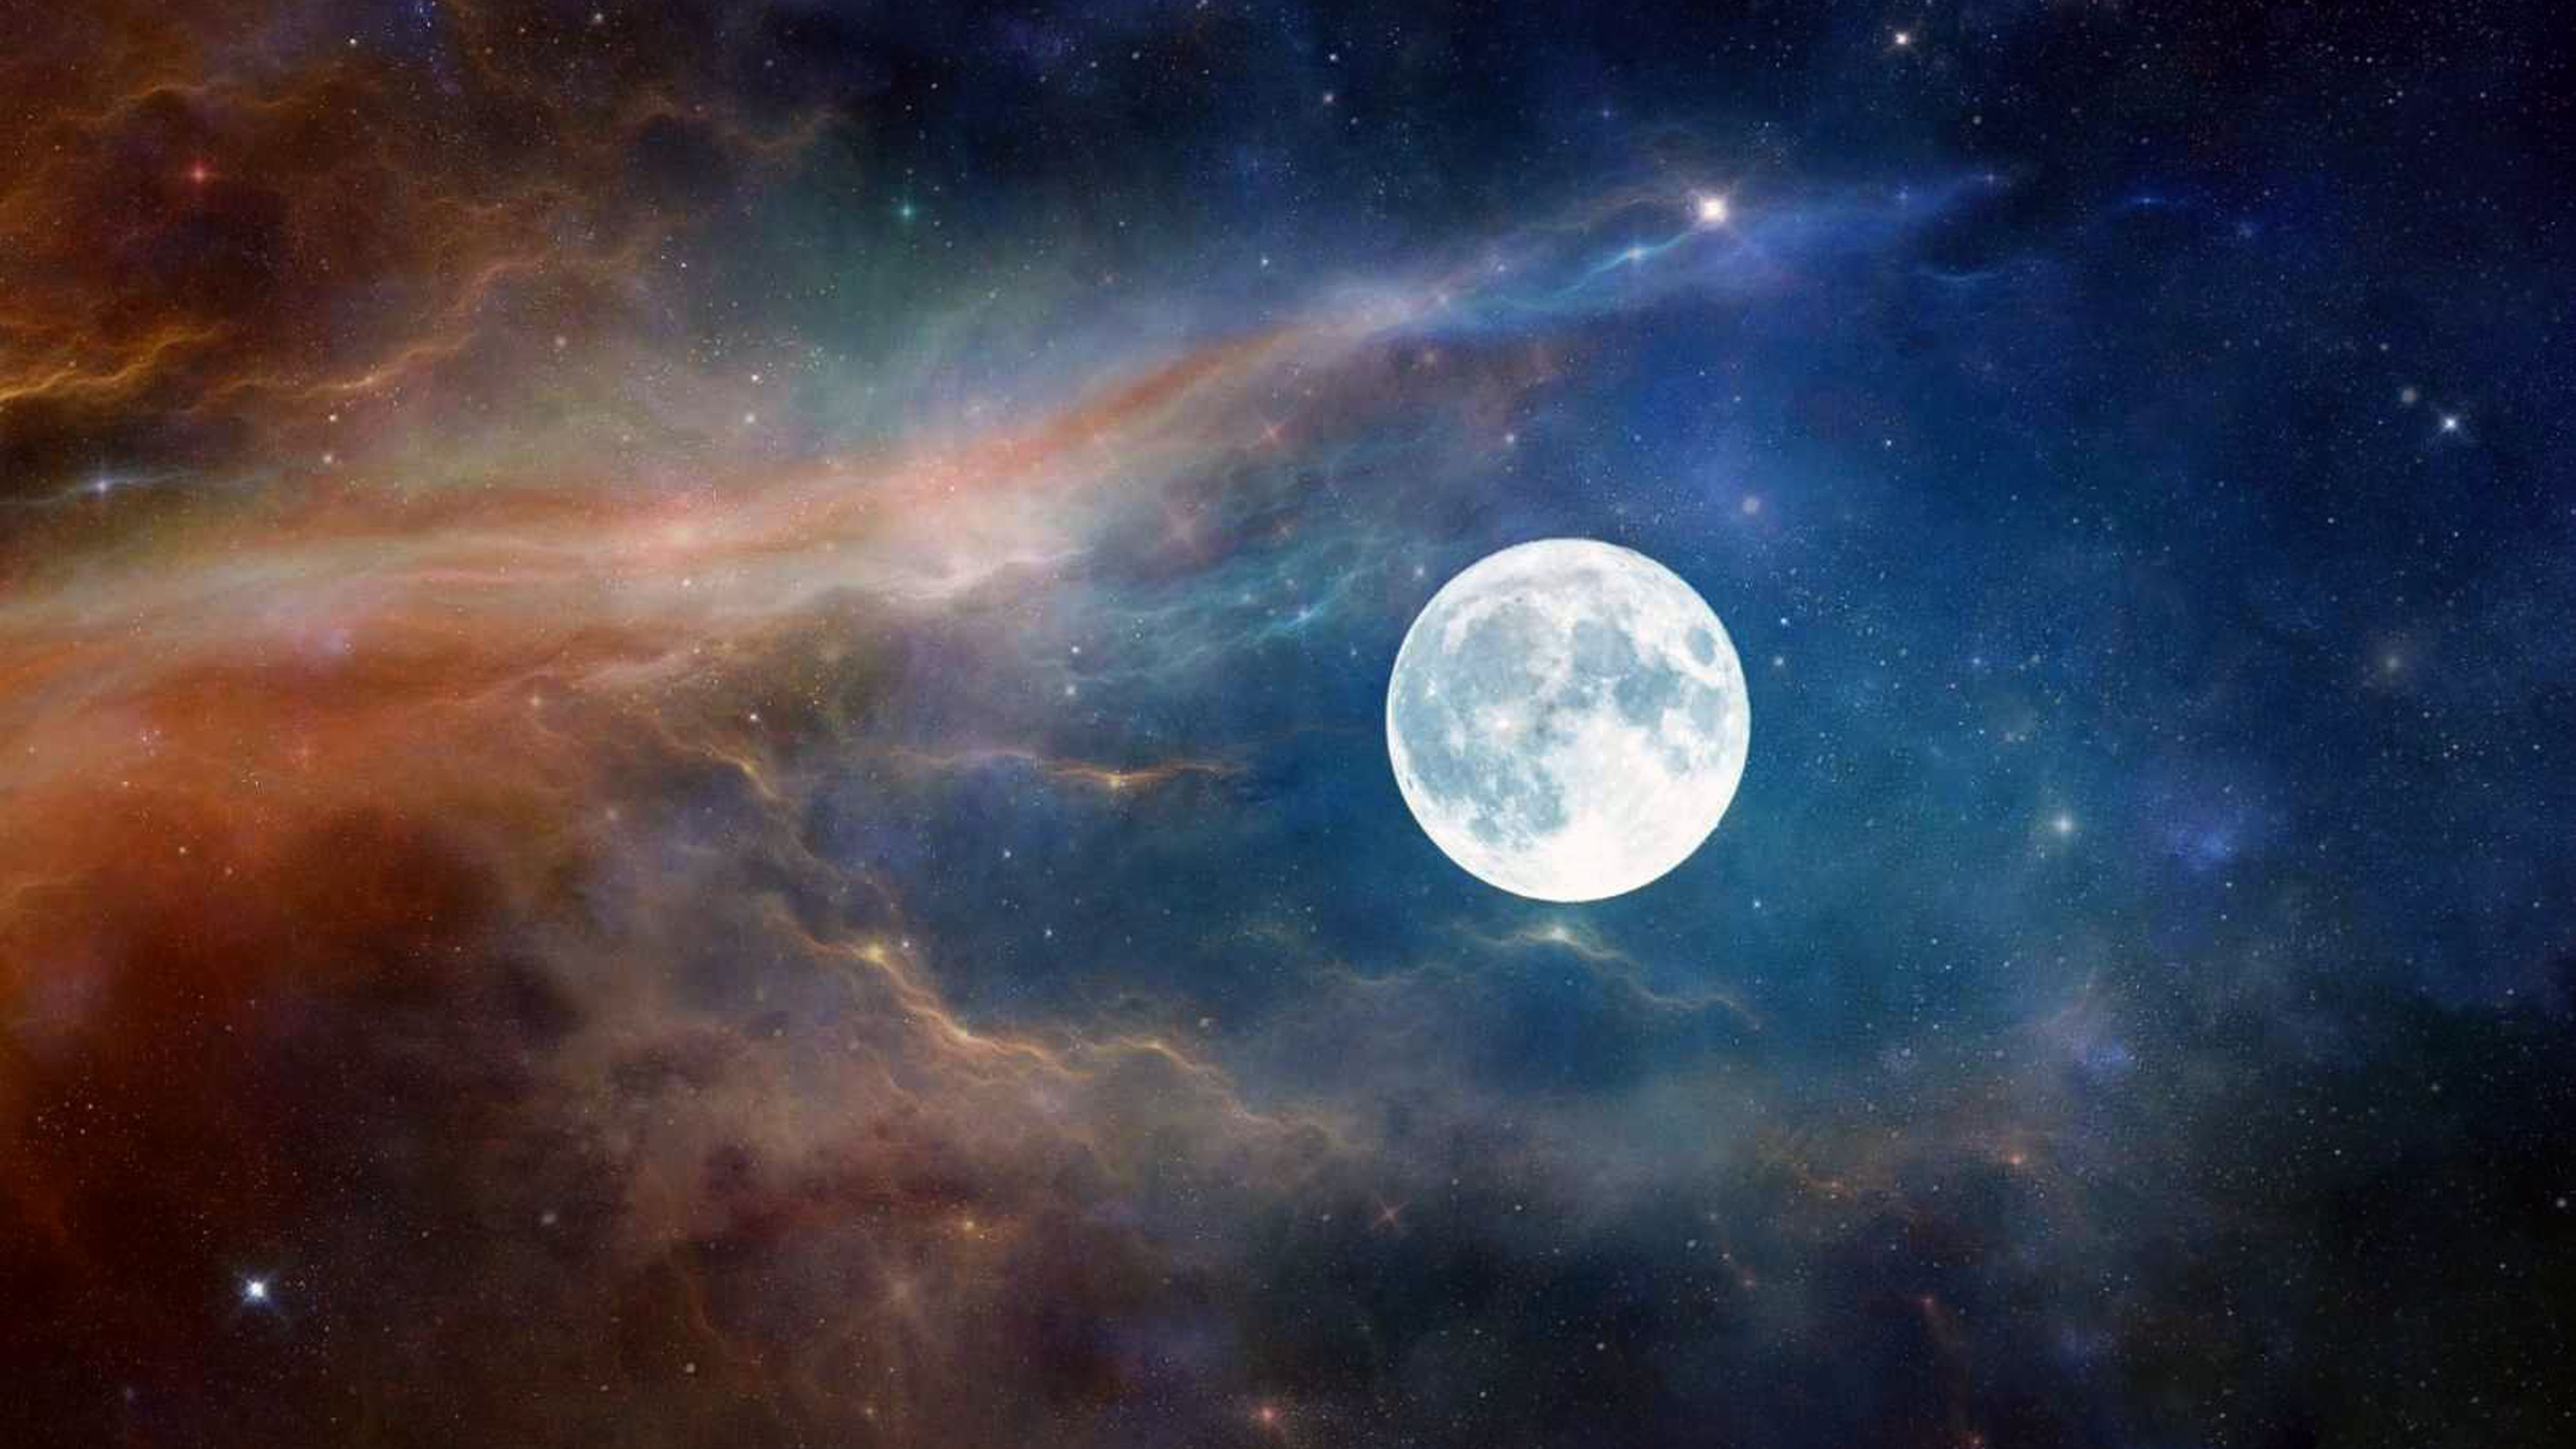 Wallpaper 4k Moon Astronaut Nature Clouds Space 4k Clouds Wallpapers Deviantart Wallpapers Hd Wallpapers Moon Wallpapers Nature Wallpapers Space Wallpapers